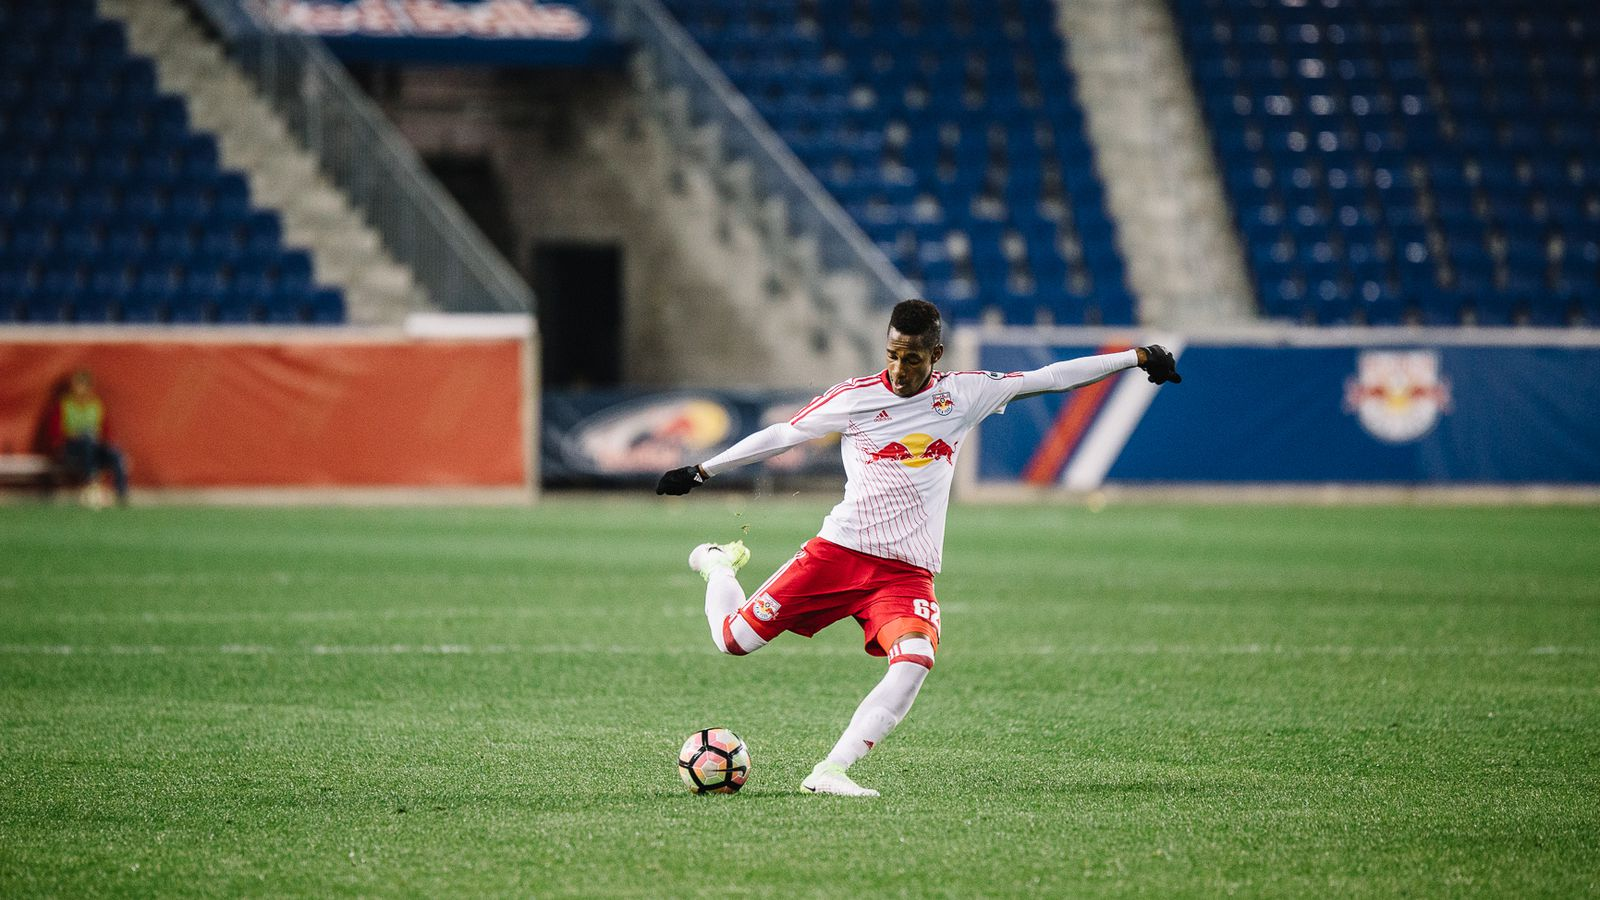 2 page essay on soccer Essays - largest database of quality sample essays and research papers on soccer game descriptive essay.